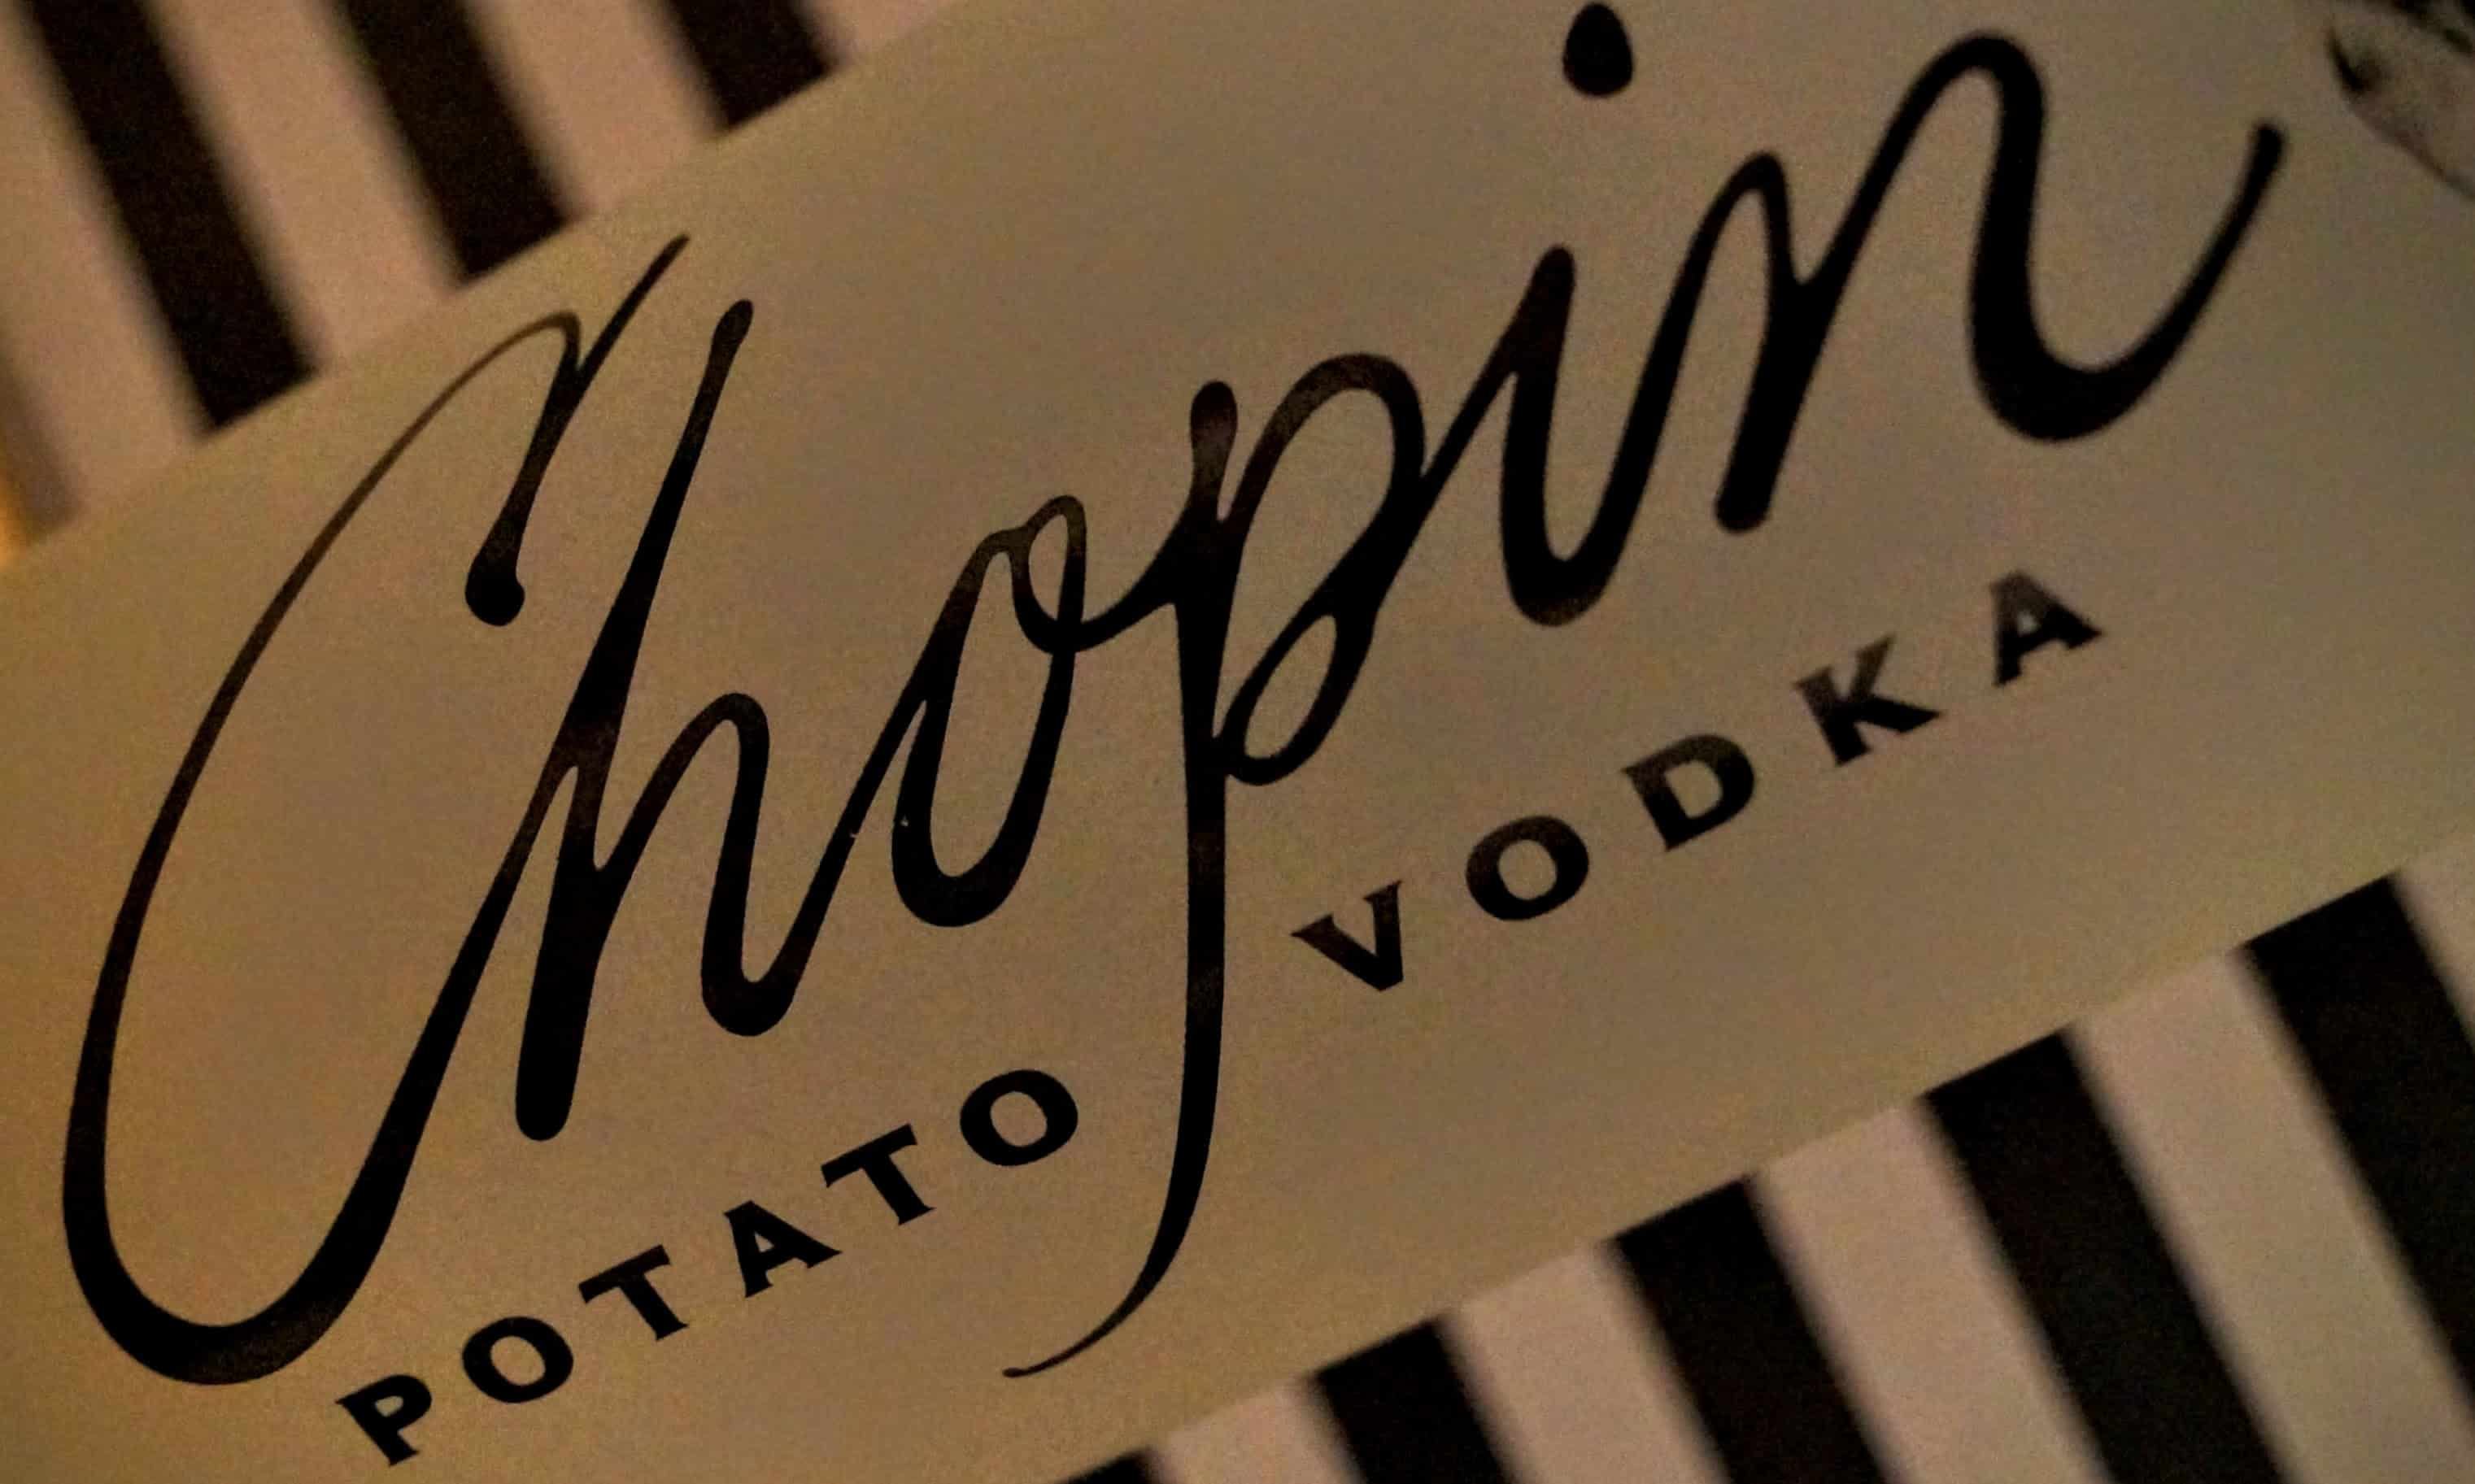 Chopin – vodka